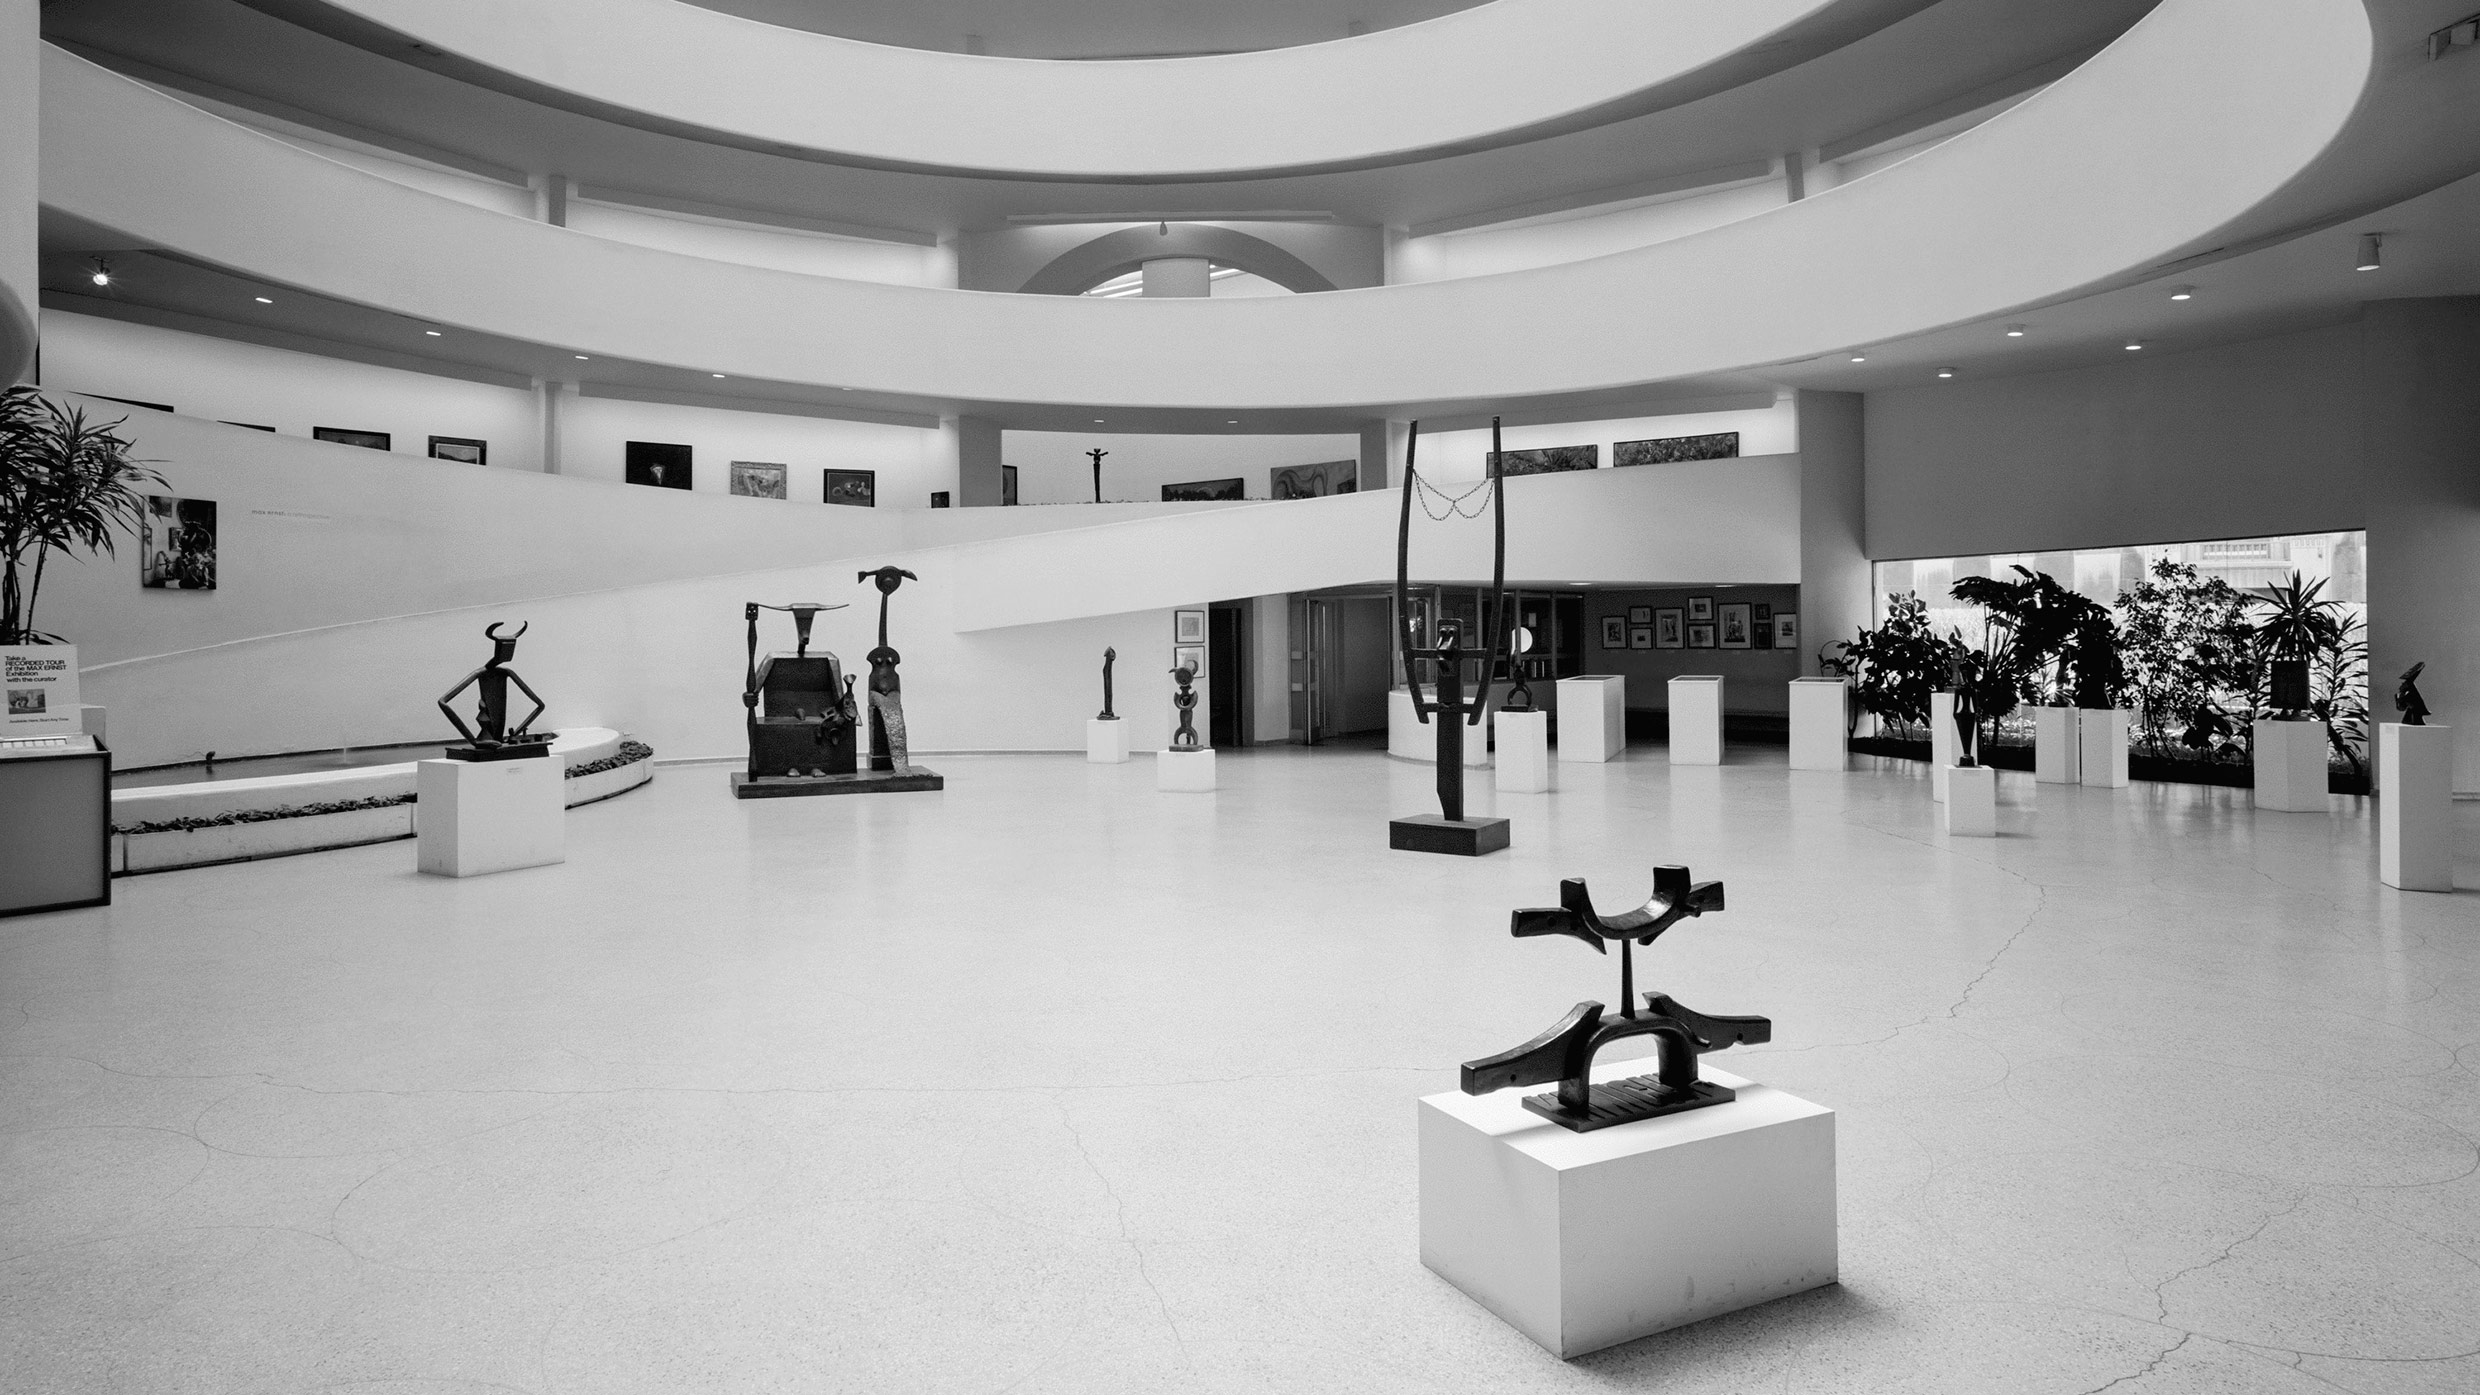 Installation view, Max Ernst: A Retrospective, Solomon R. Guggenheim Museum, New York, February 14–April 20, 1975.